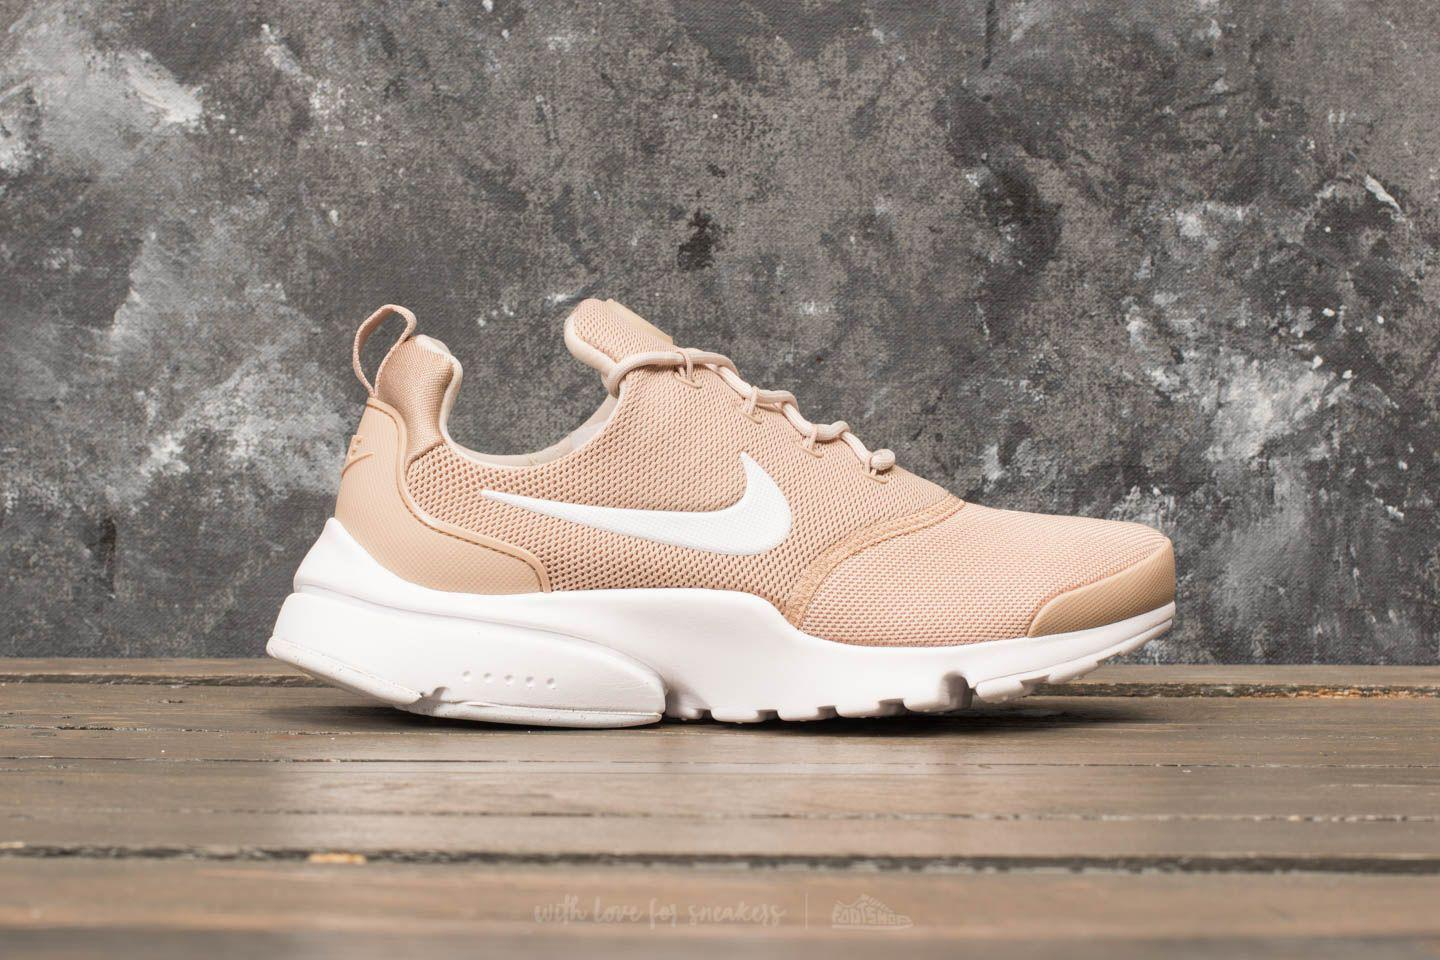 newest 9a61e f38ee Nike Natural Wmns Presto Fly Sand/ Dessert Sand